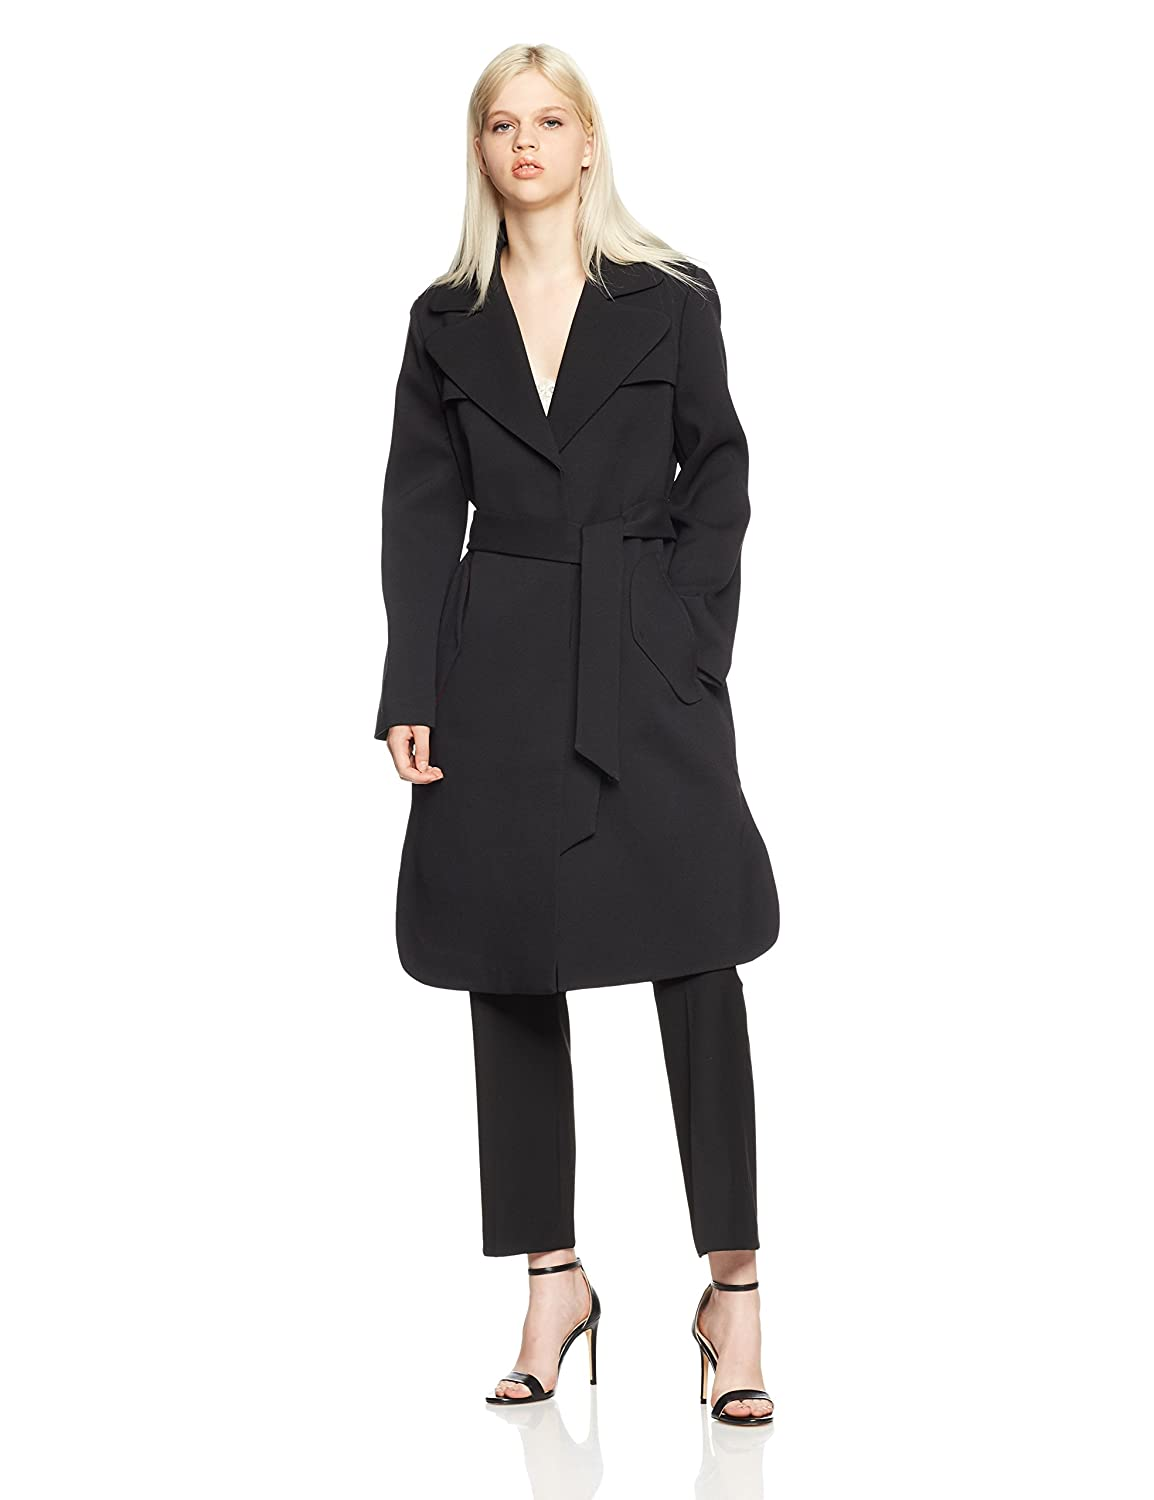 rational construction fashion style reputable site Amazon.com: A|X Armani Exchange Women's Mid Length Trench ...